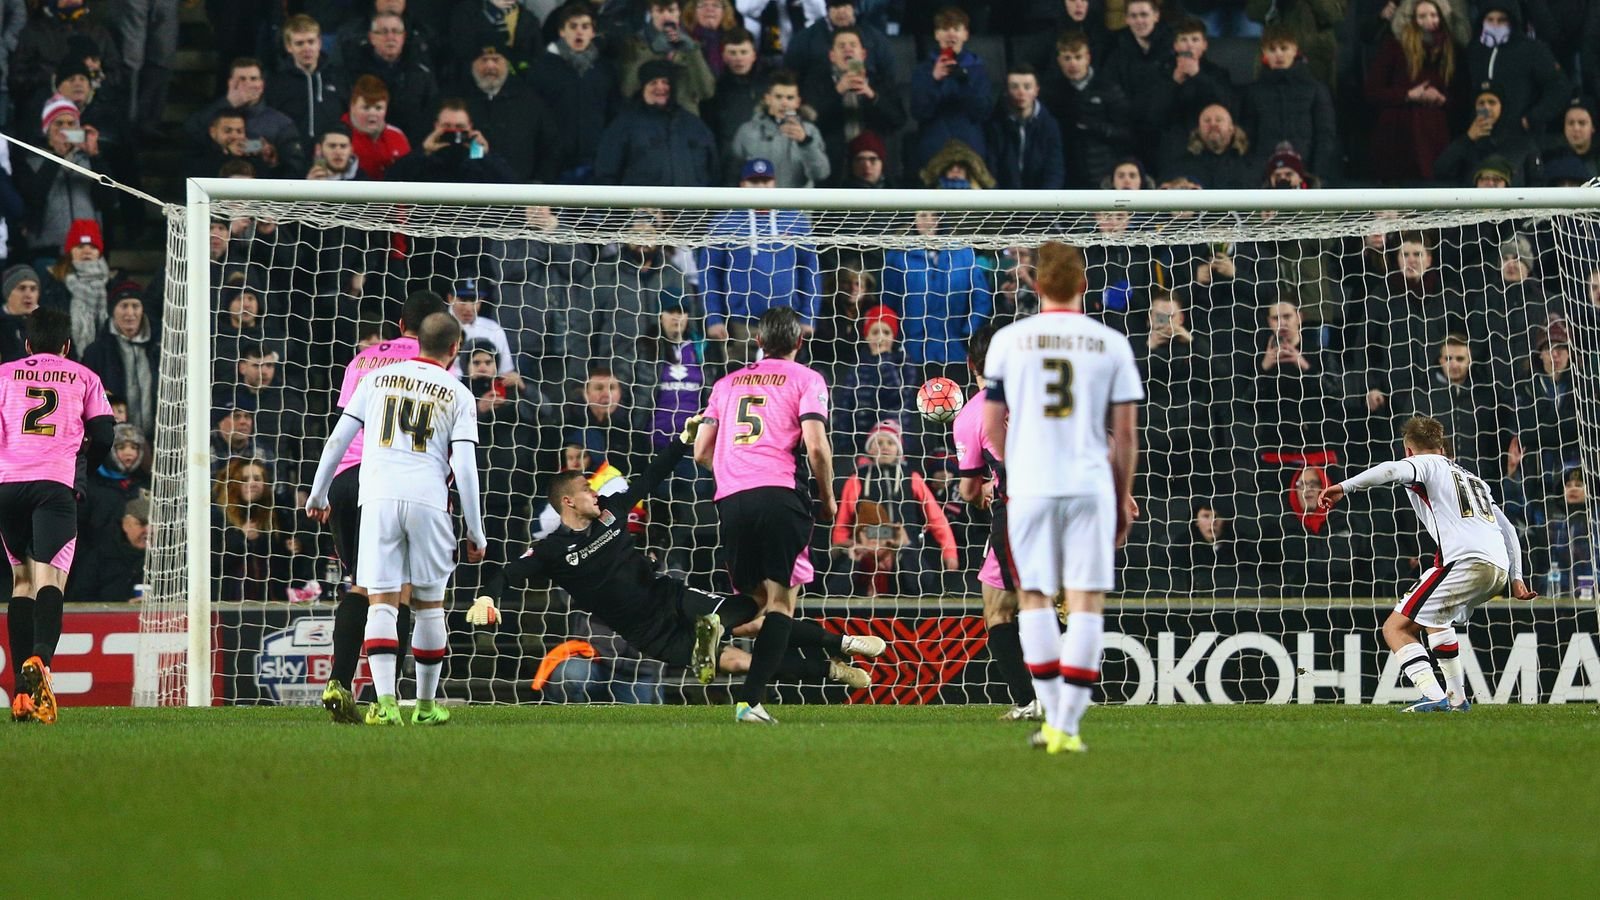 Mk dons v northampton betting preview goal bet365 betting system